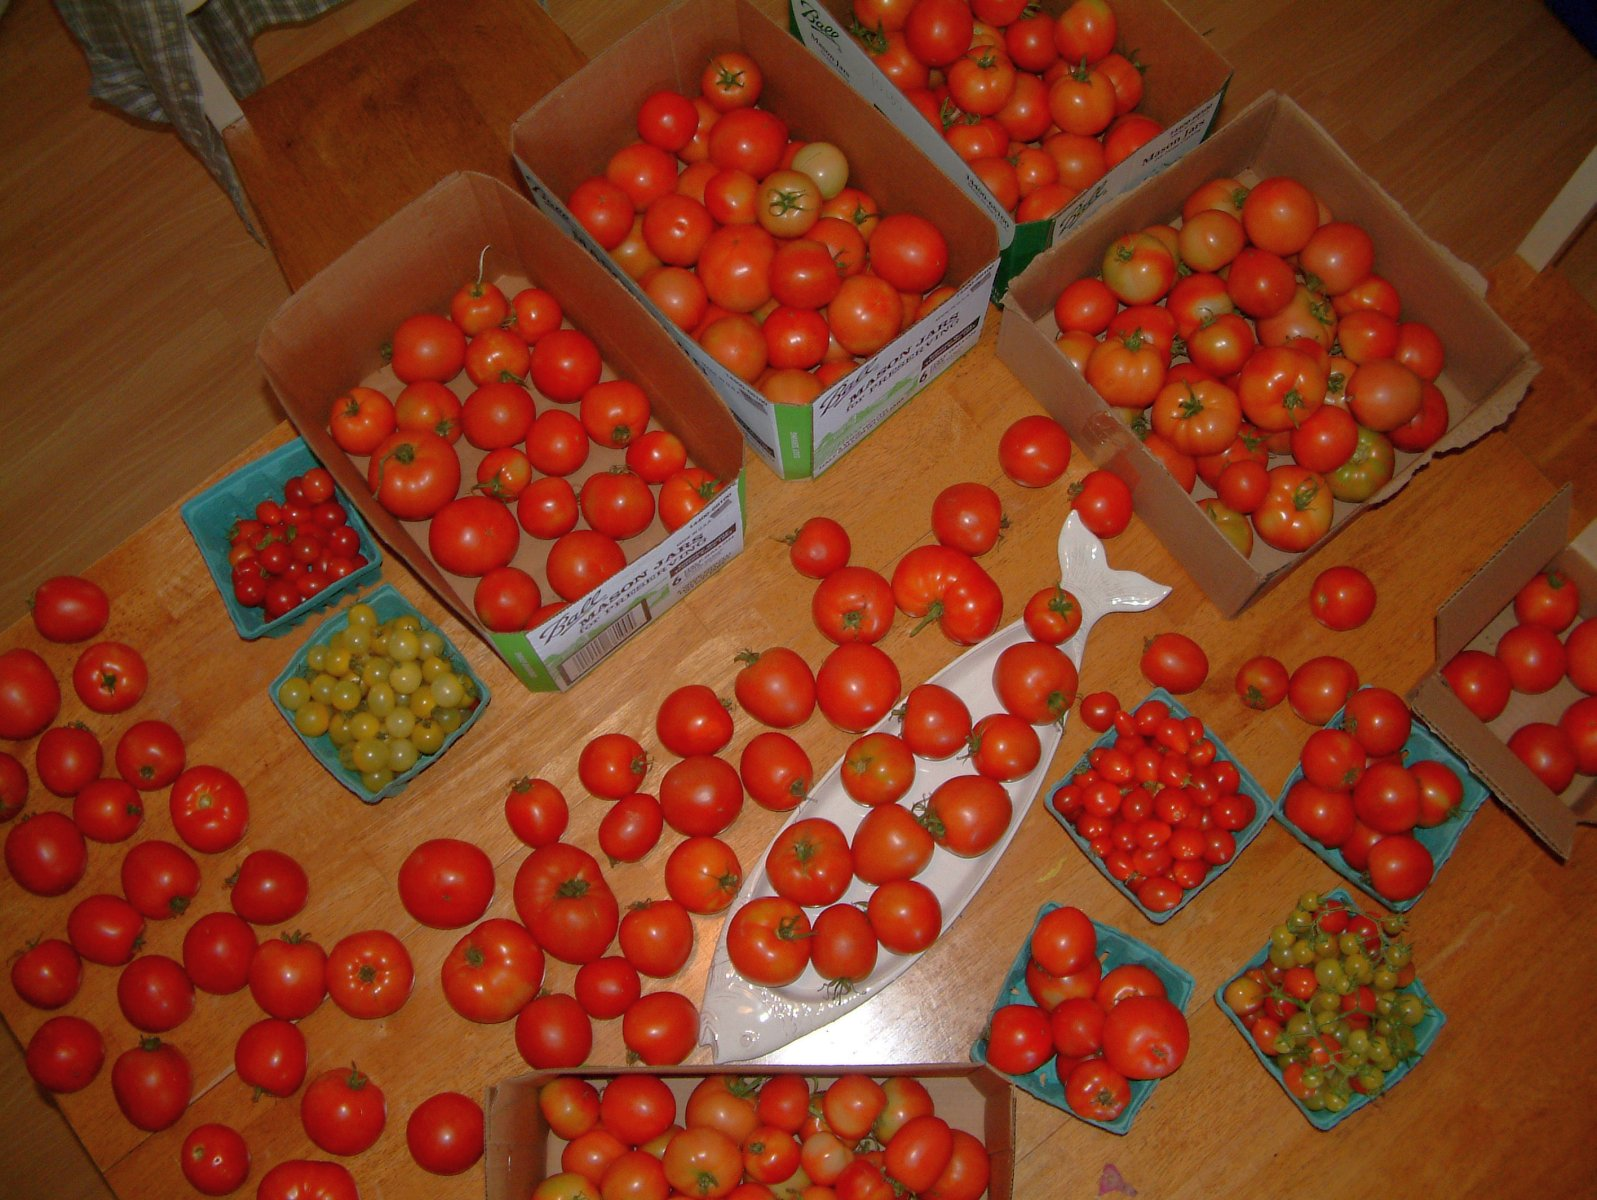 107pounds of tomatoes in 1 week!!